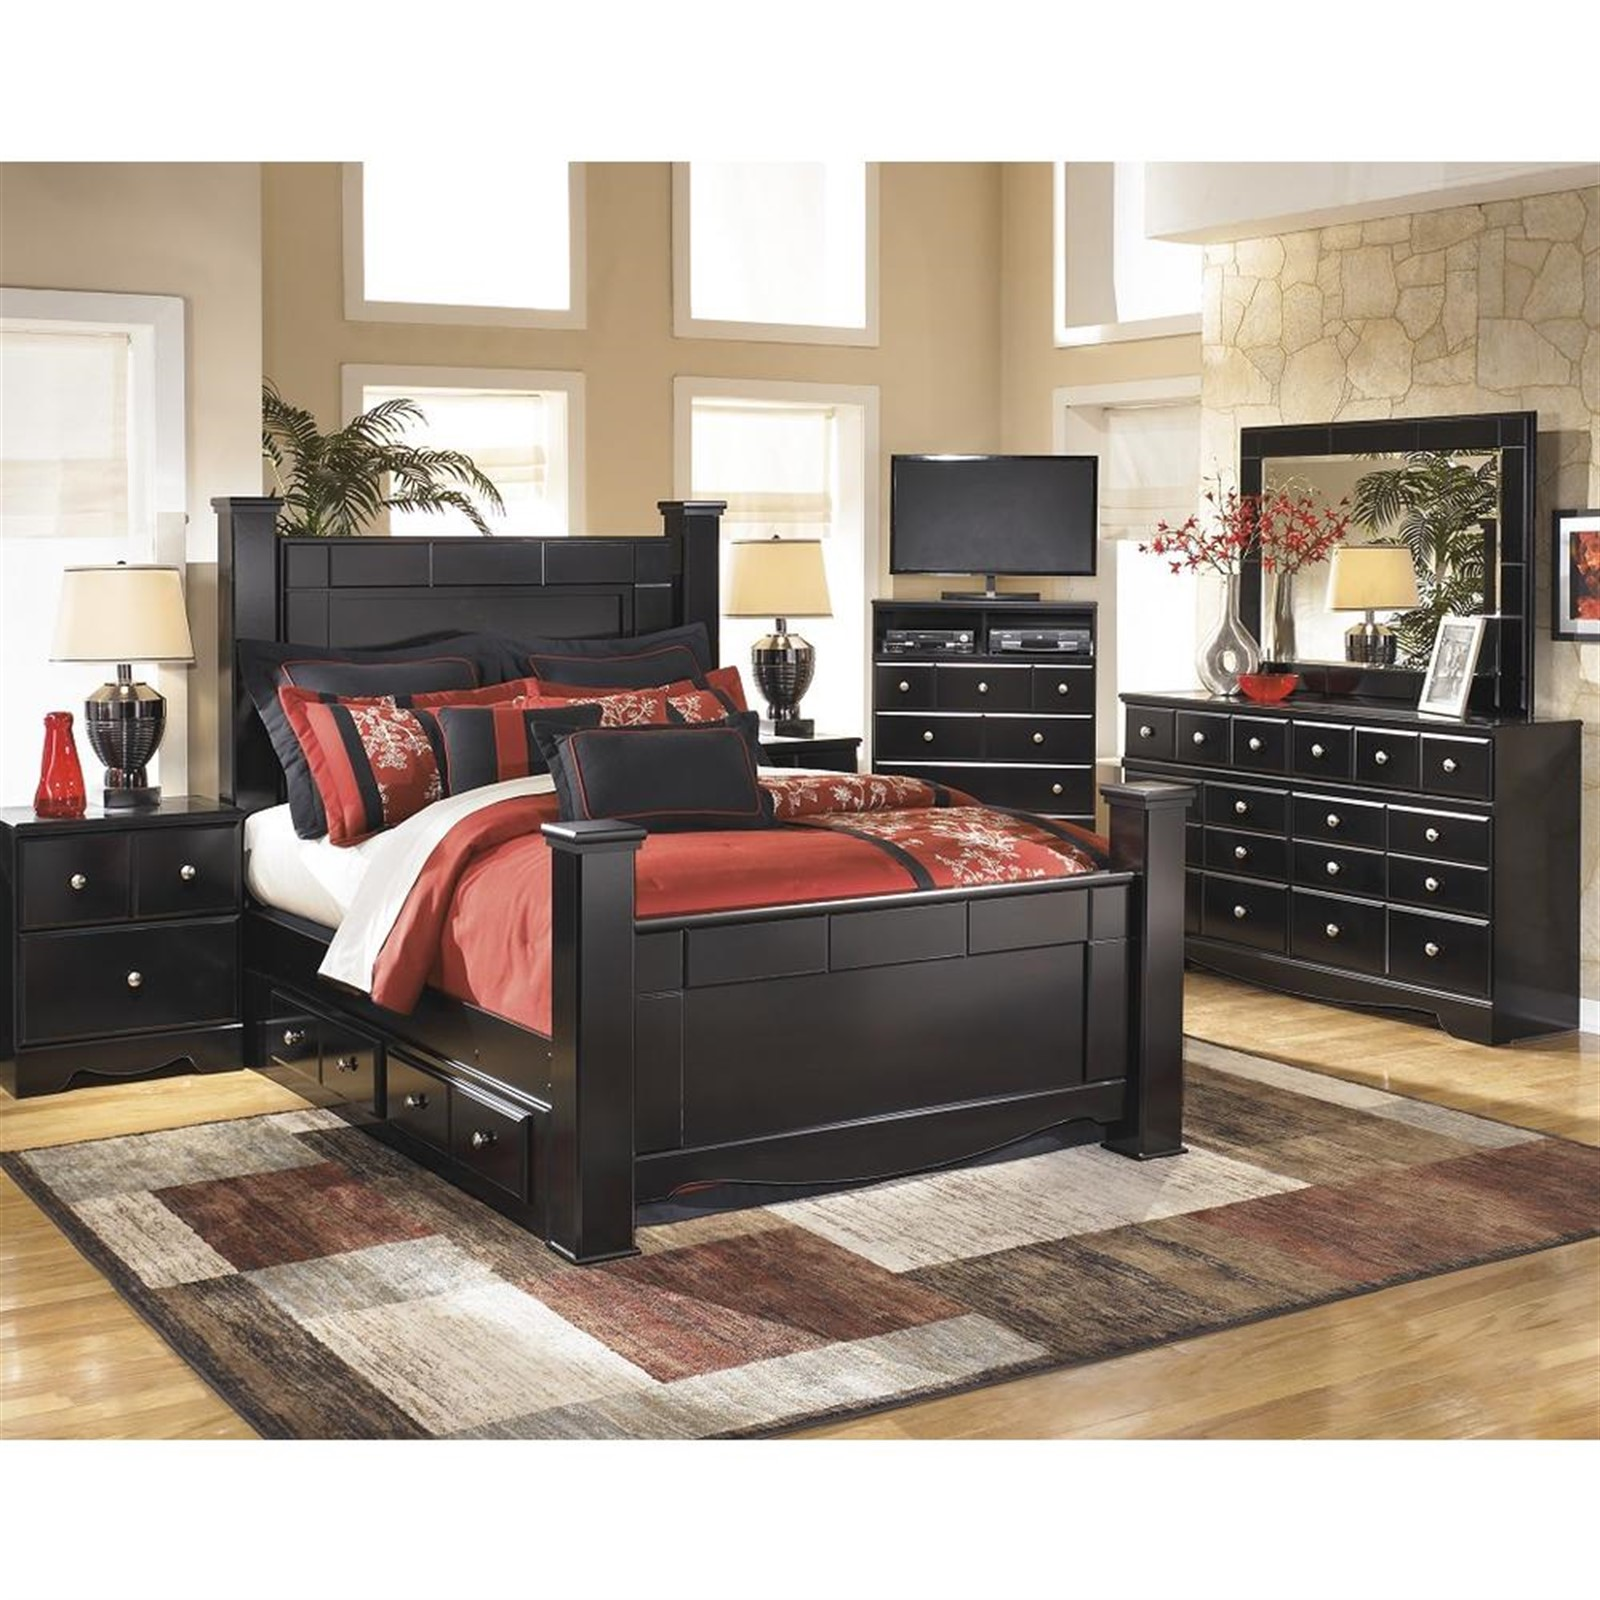 Shay Almost Black Queen Bed with Under Bed Storage and Posts